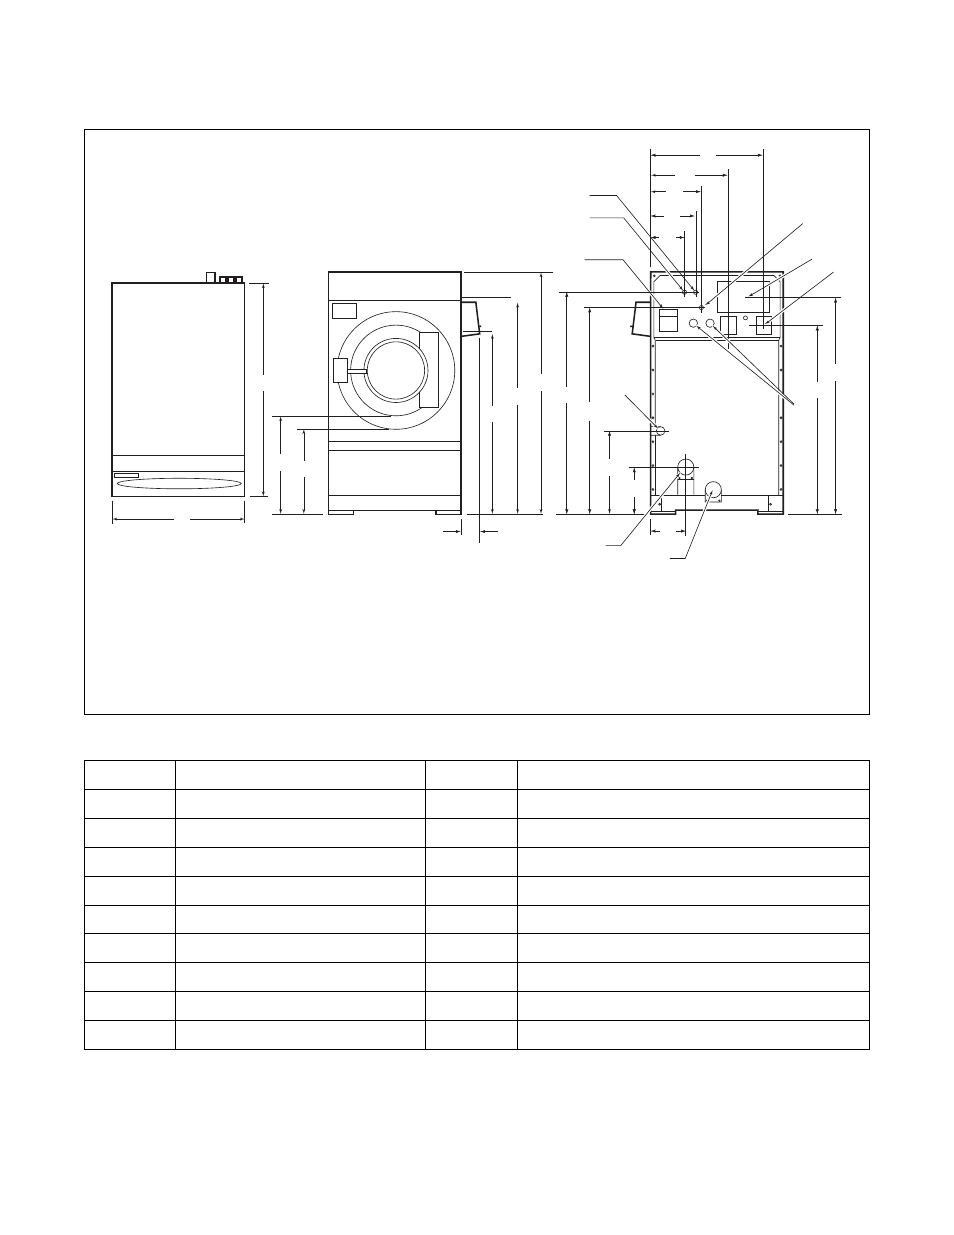 medium resolution of 175 pound models alliance laundry systems phm1397c user manual page 24 48